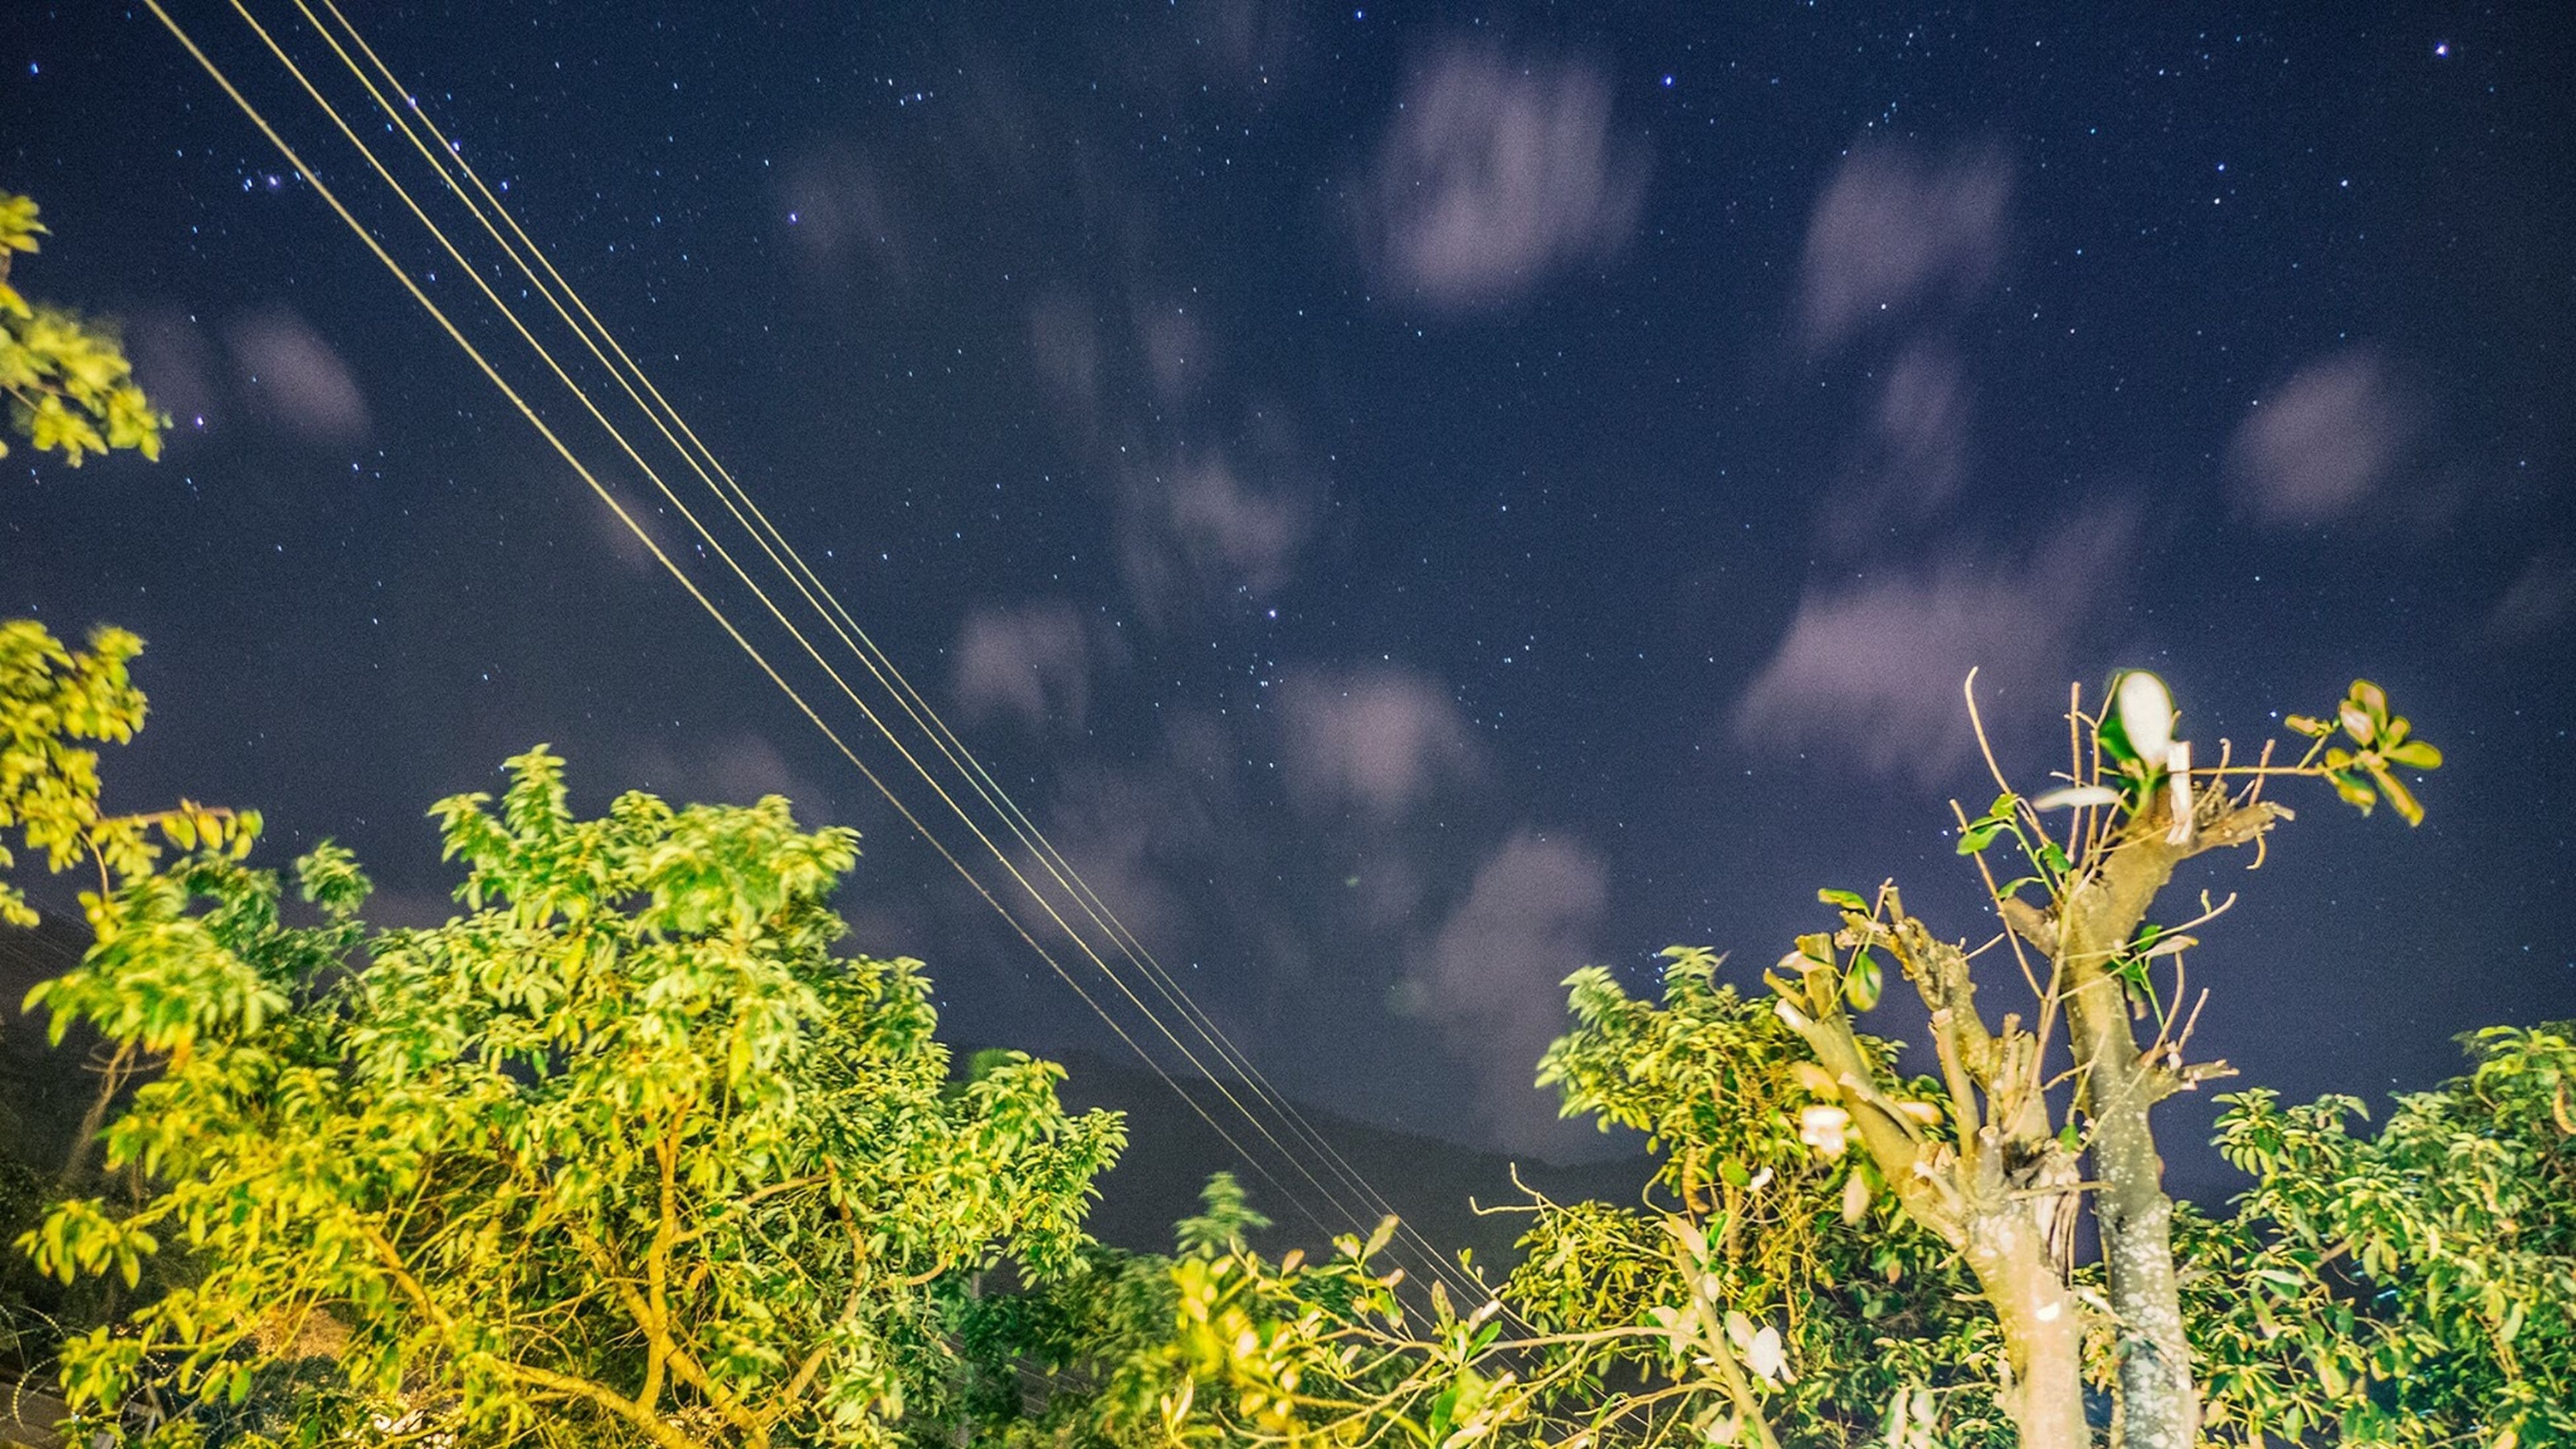 night, tree, low angle view, sky, nature, beauty in nature, star - space, tranquil scene, tranquility, scenics, growth, star field, connection, star, green color, astronomy, outdoors, plant, idyllic, no people